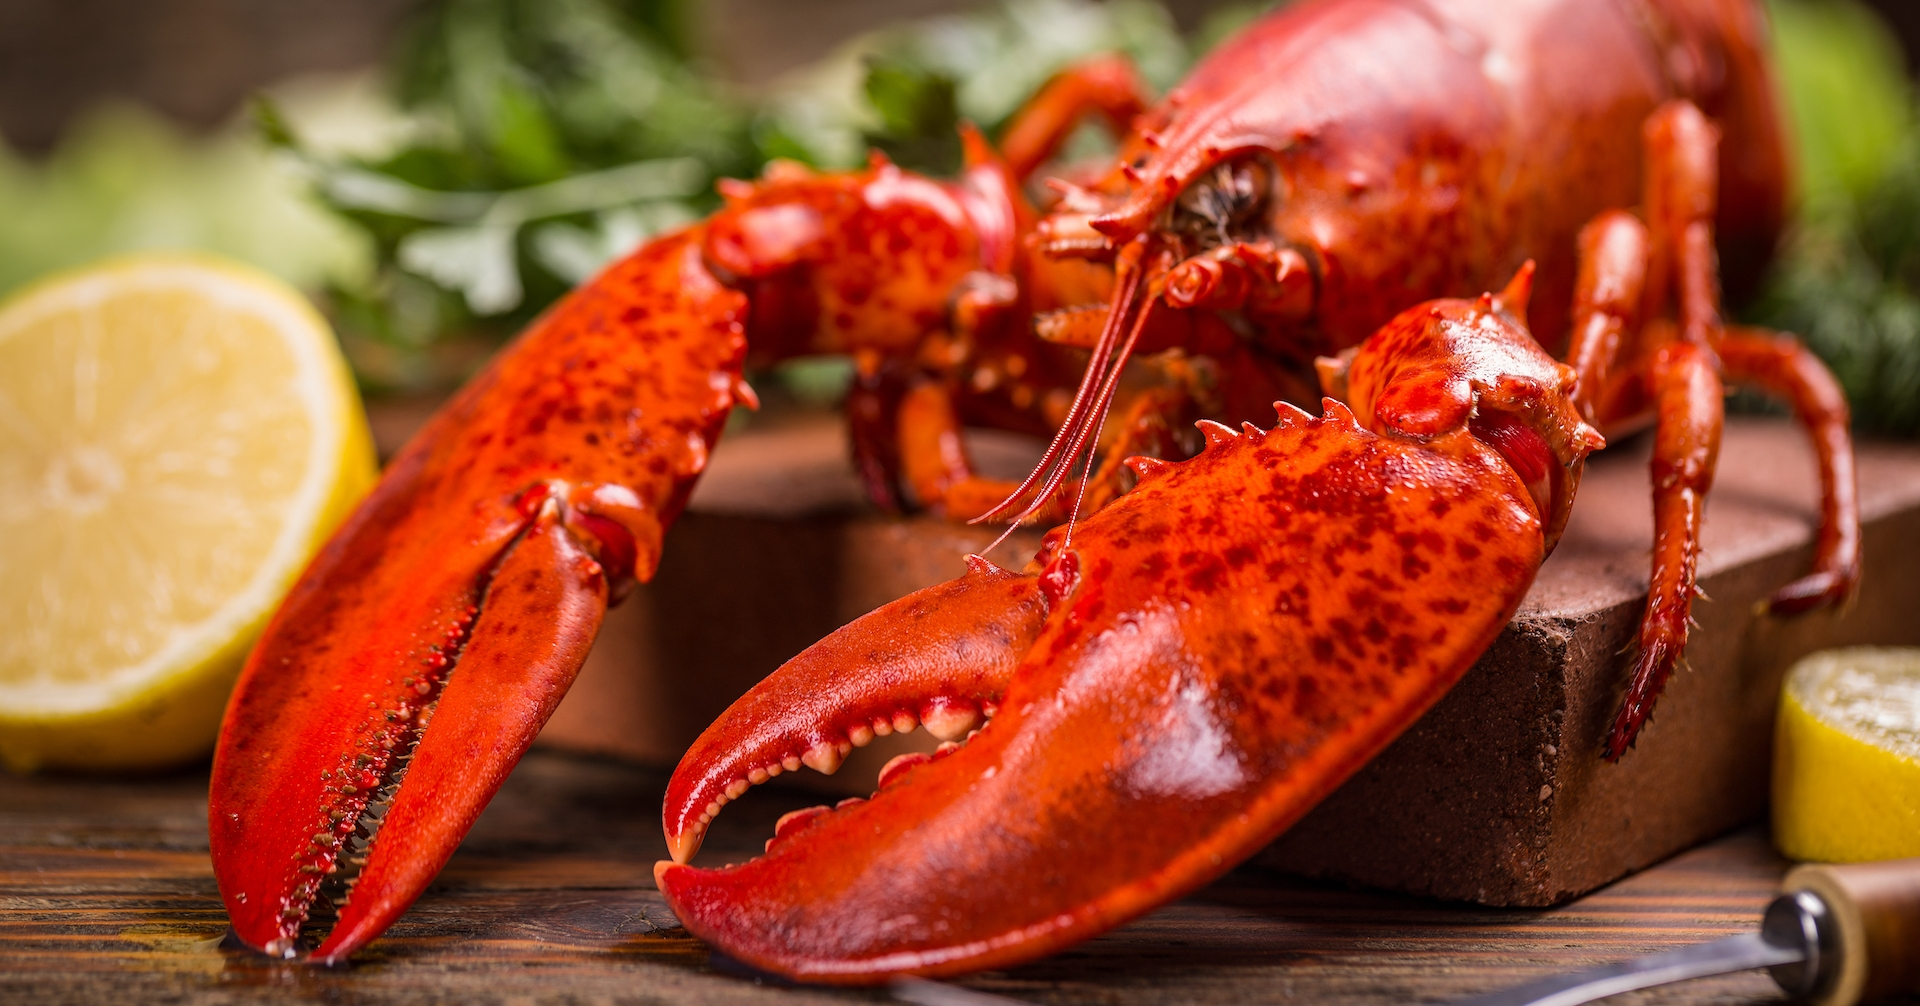 Lobster-Licious